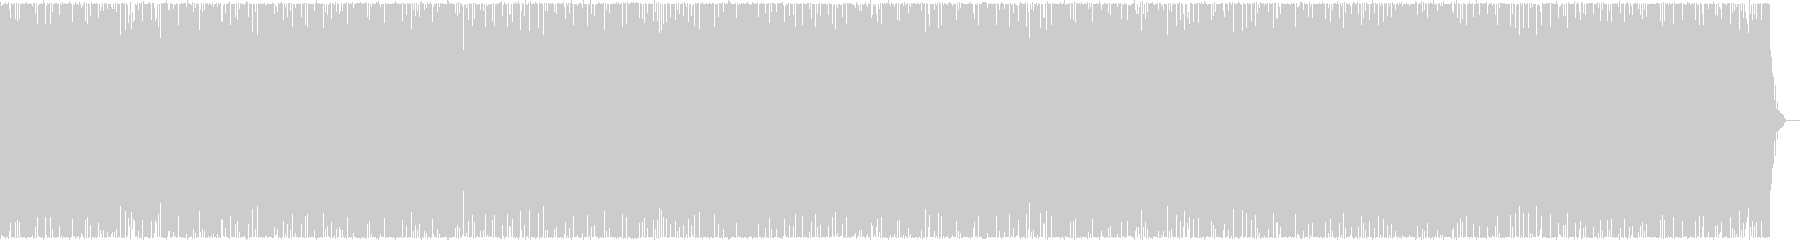 Bouncy BGM's unreproduced waveform